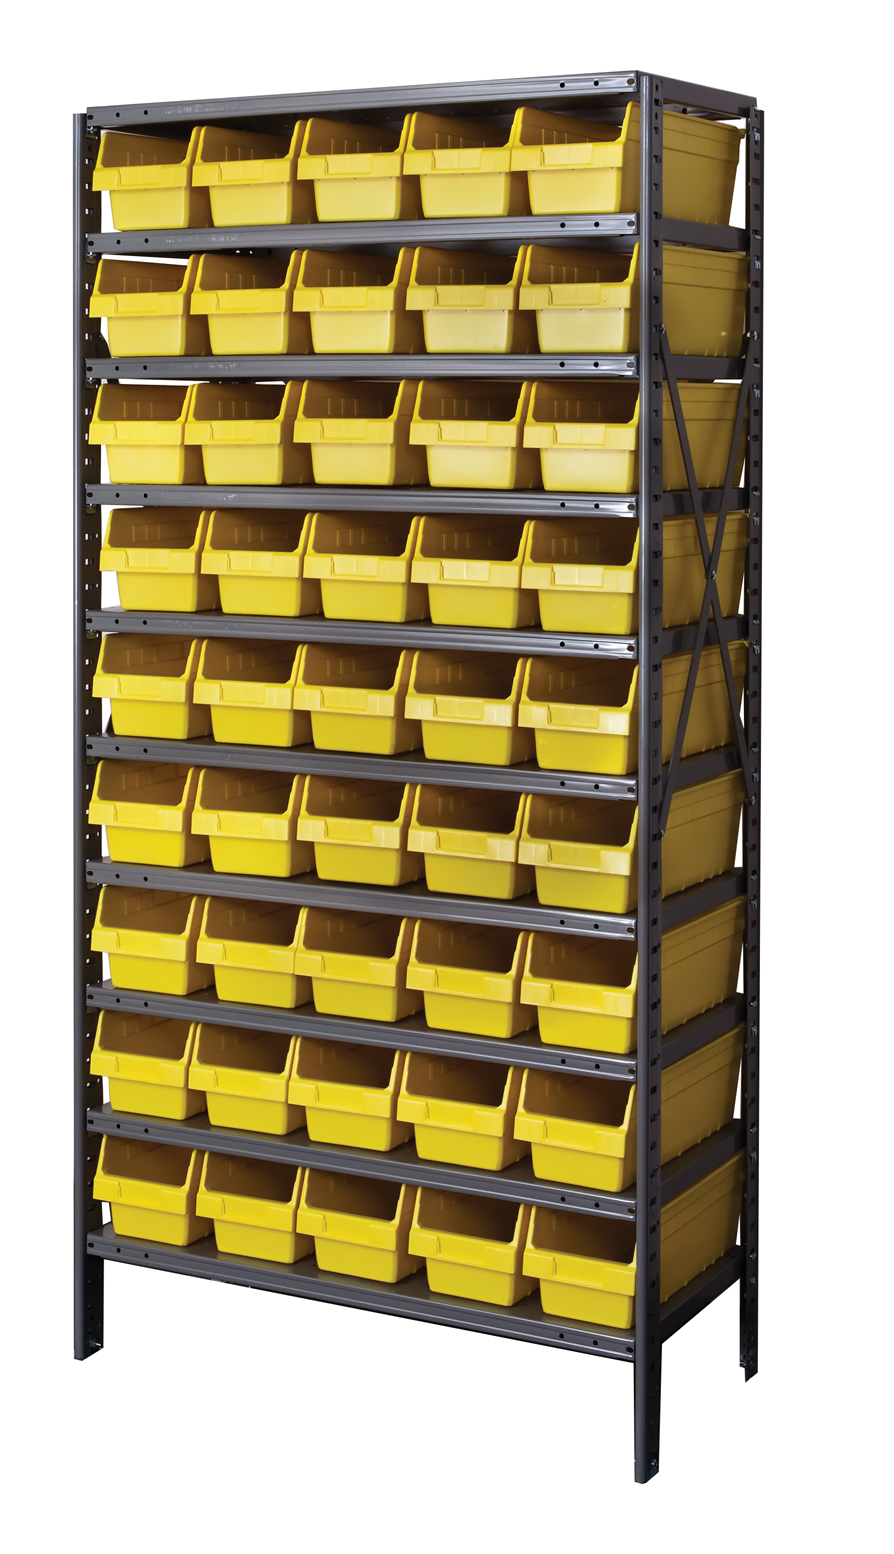 Plastic Bin Shelving Discontinued By Hallowell